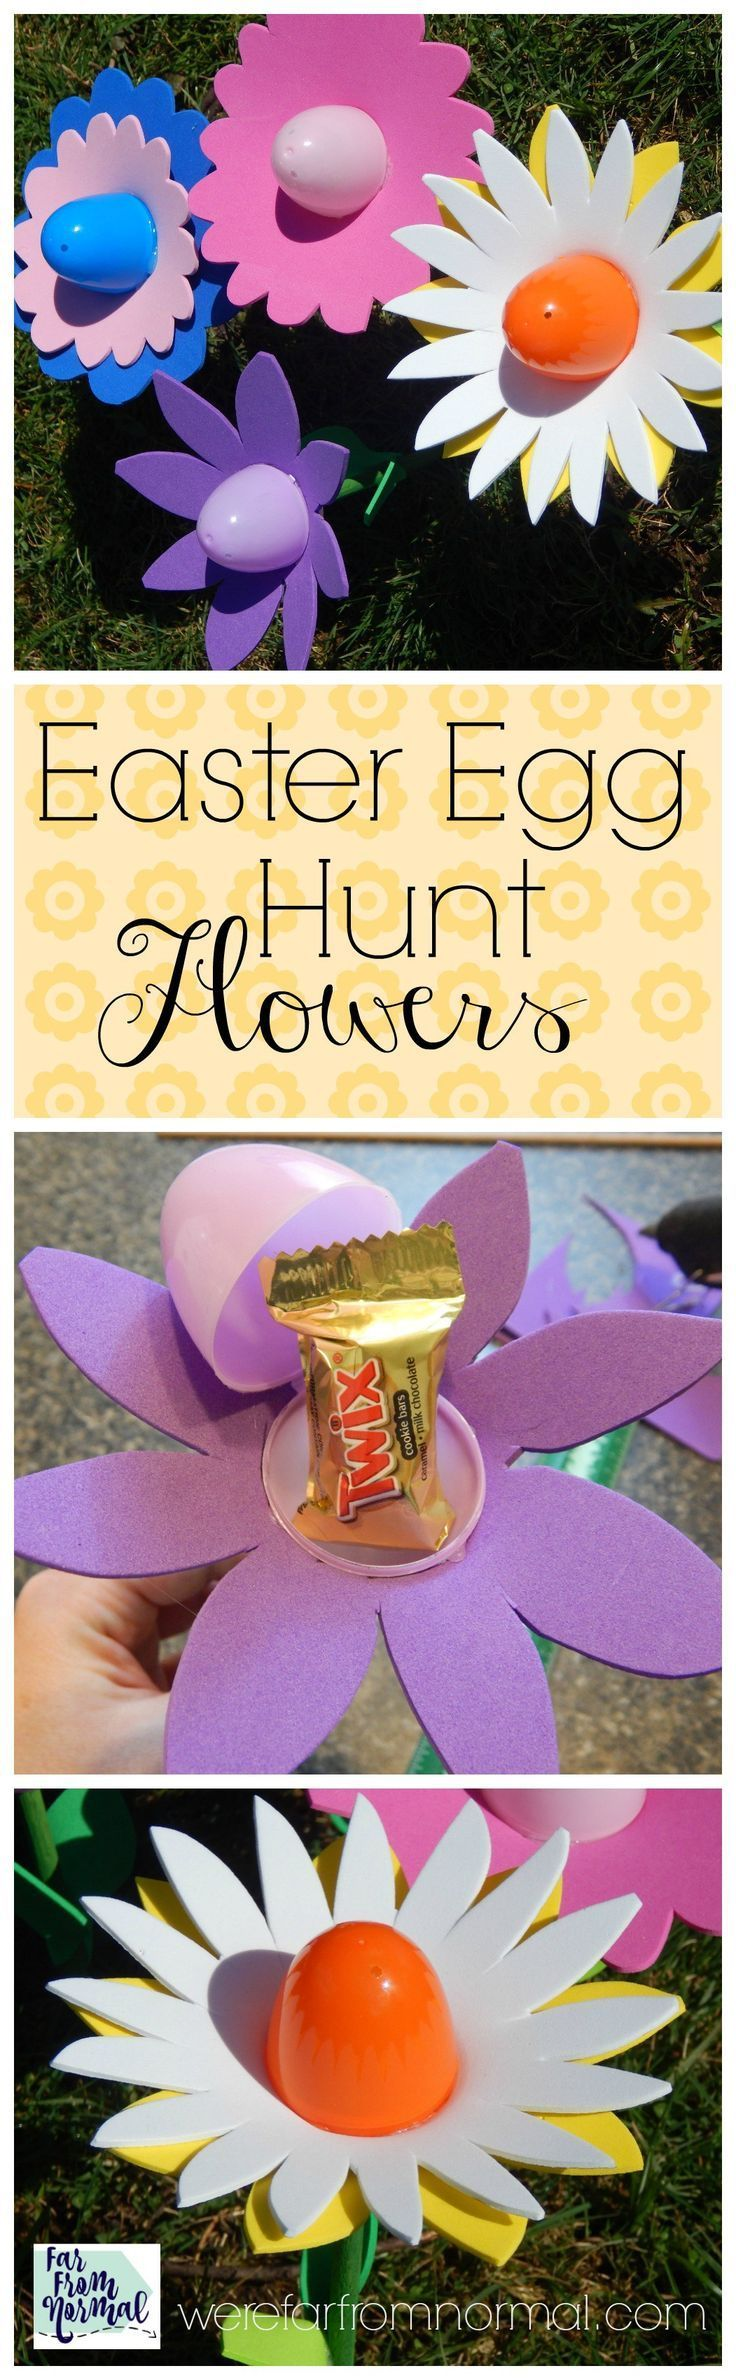 Are you planning a fun filled Easter egg hunt? These flowers make a fun addition! Fill them with goodies for hunting or in baskets and decorations!